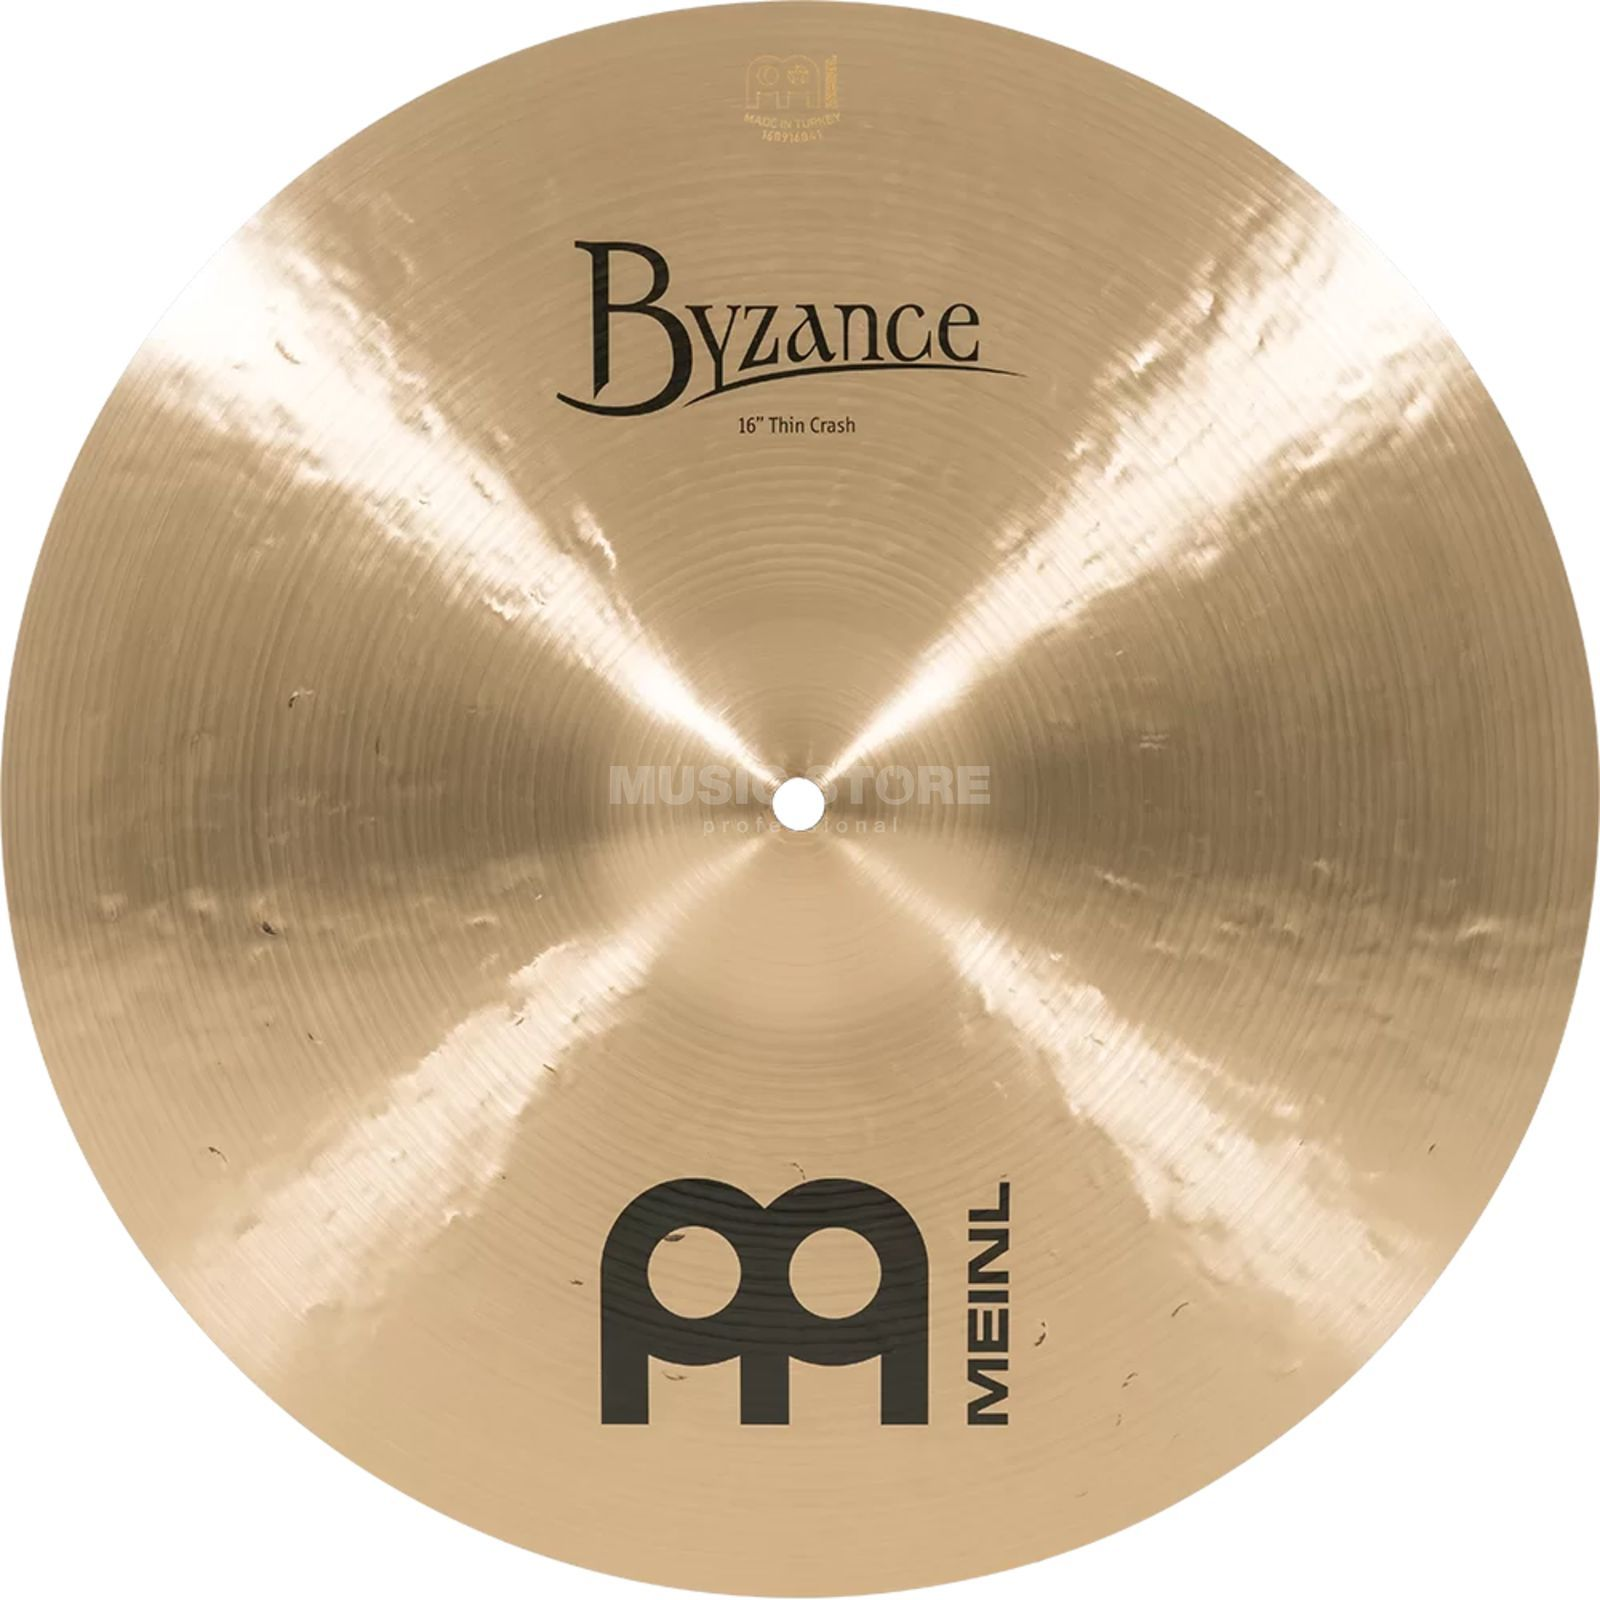 "Meinl Byzance Thin Crash 16"", B16TC, Traditional Finish Produktbild"